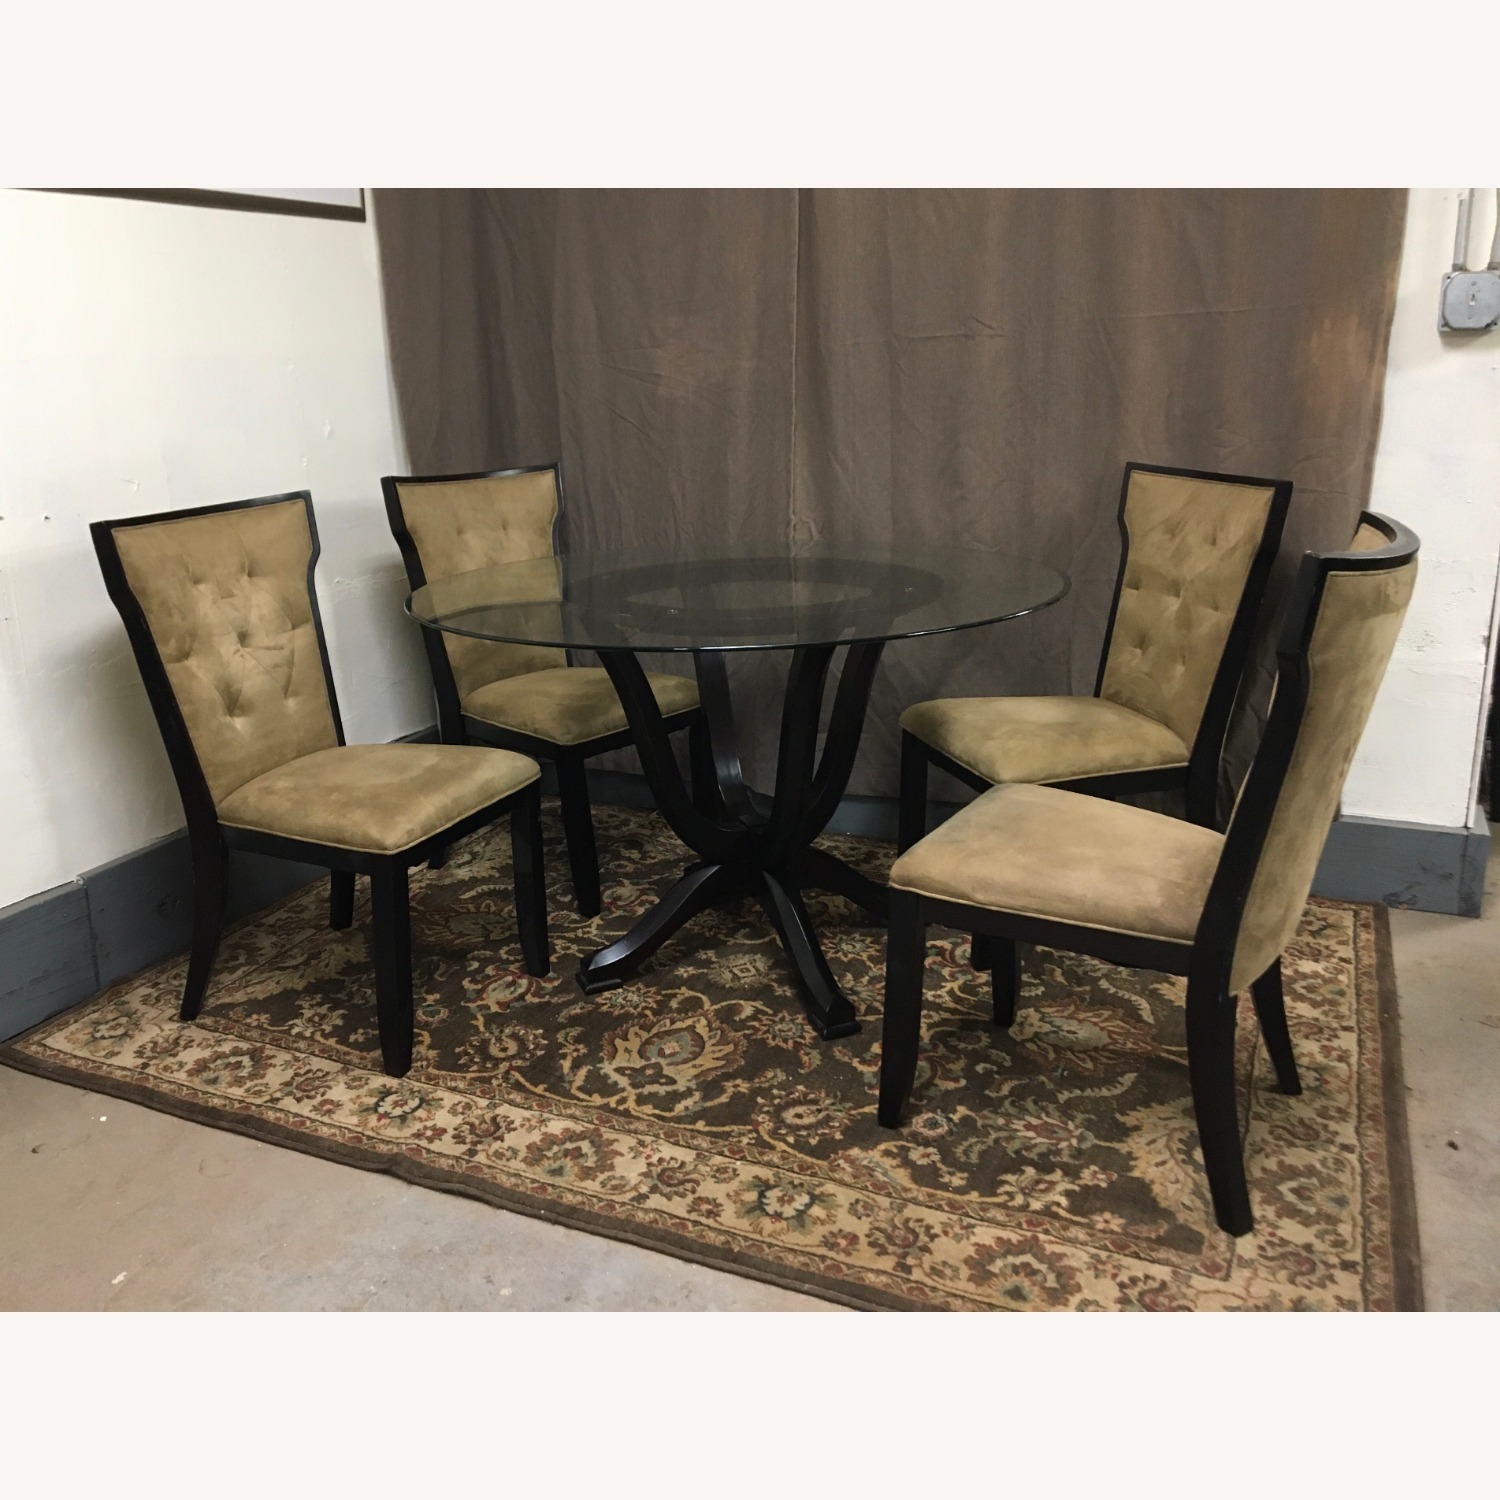 Raymour & Flanigan Glass Table & 4 Basset Padded Chairs - image-1